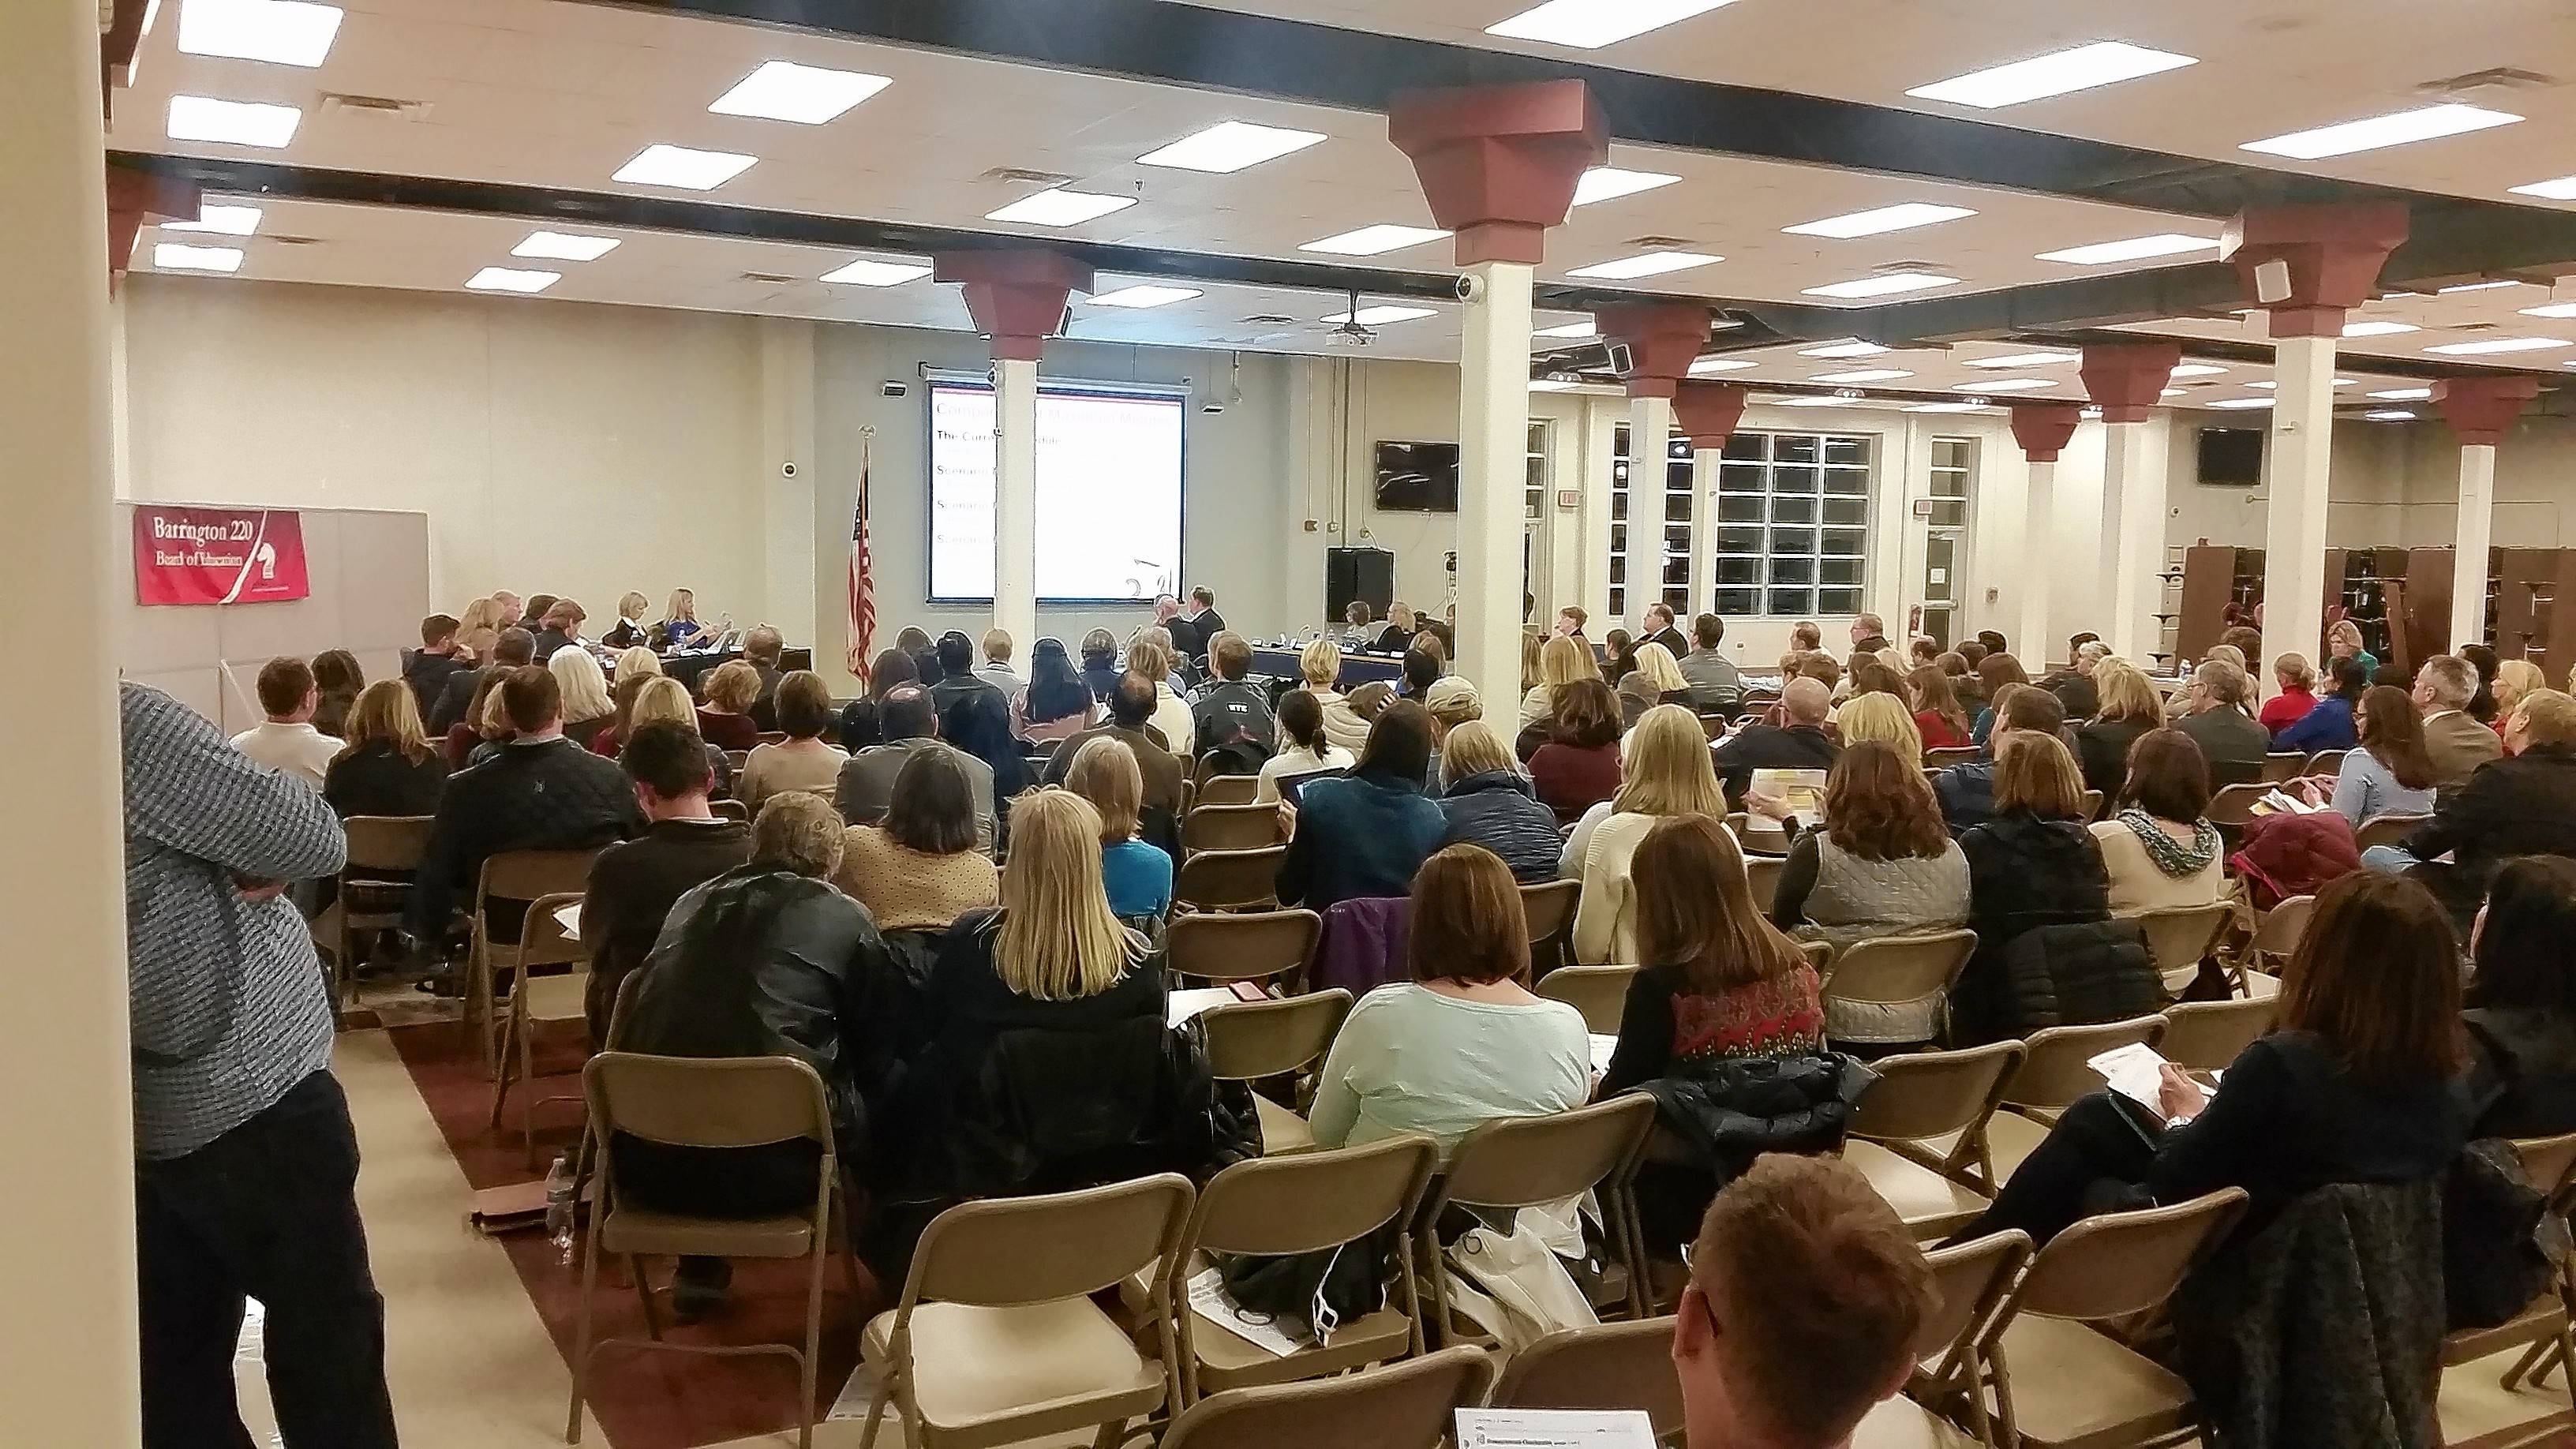 The District 220 school board meeting drew a crowd Tuesday night in Barrington for more discussion on later start times.